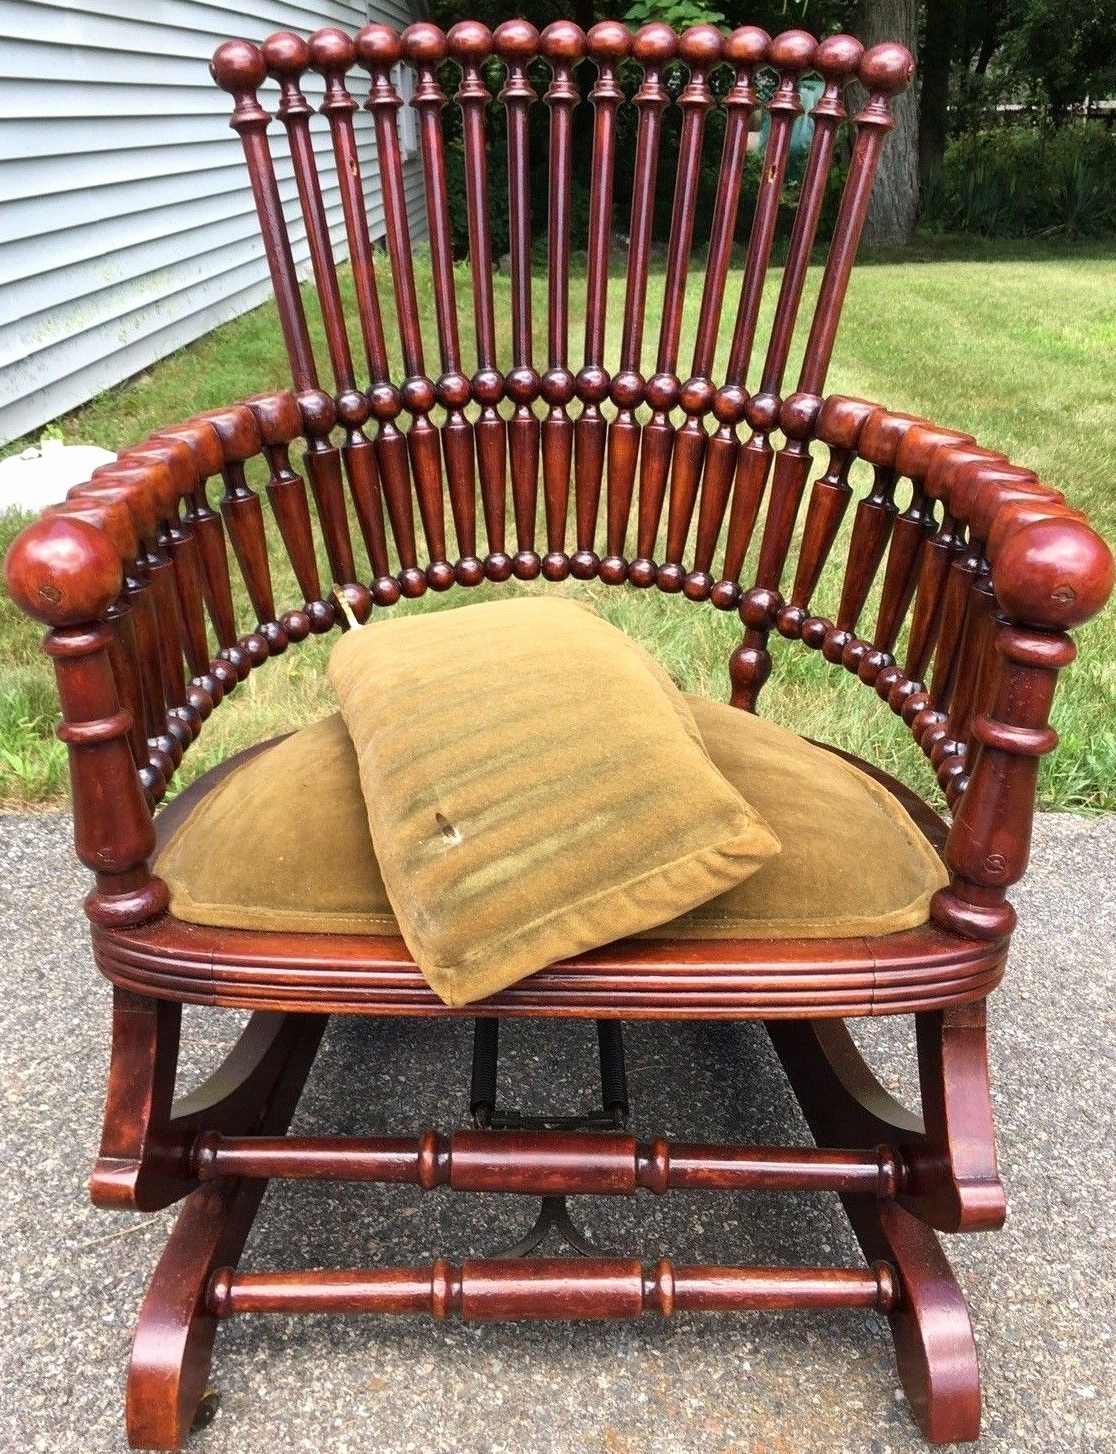 Preferred Old Fashioned Rocking Chairs With 20 Best Of Old Fashioned Rocking Chair (View 8 of 15)